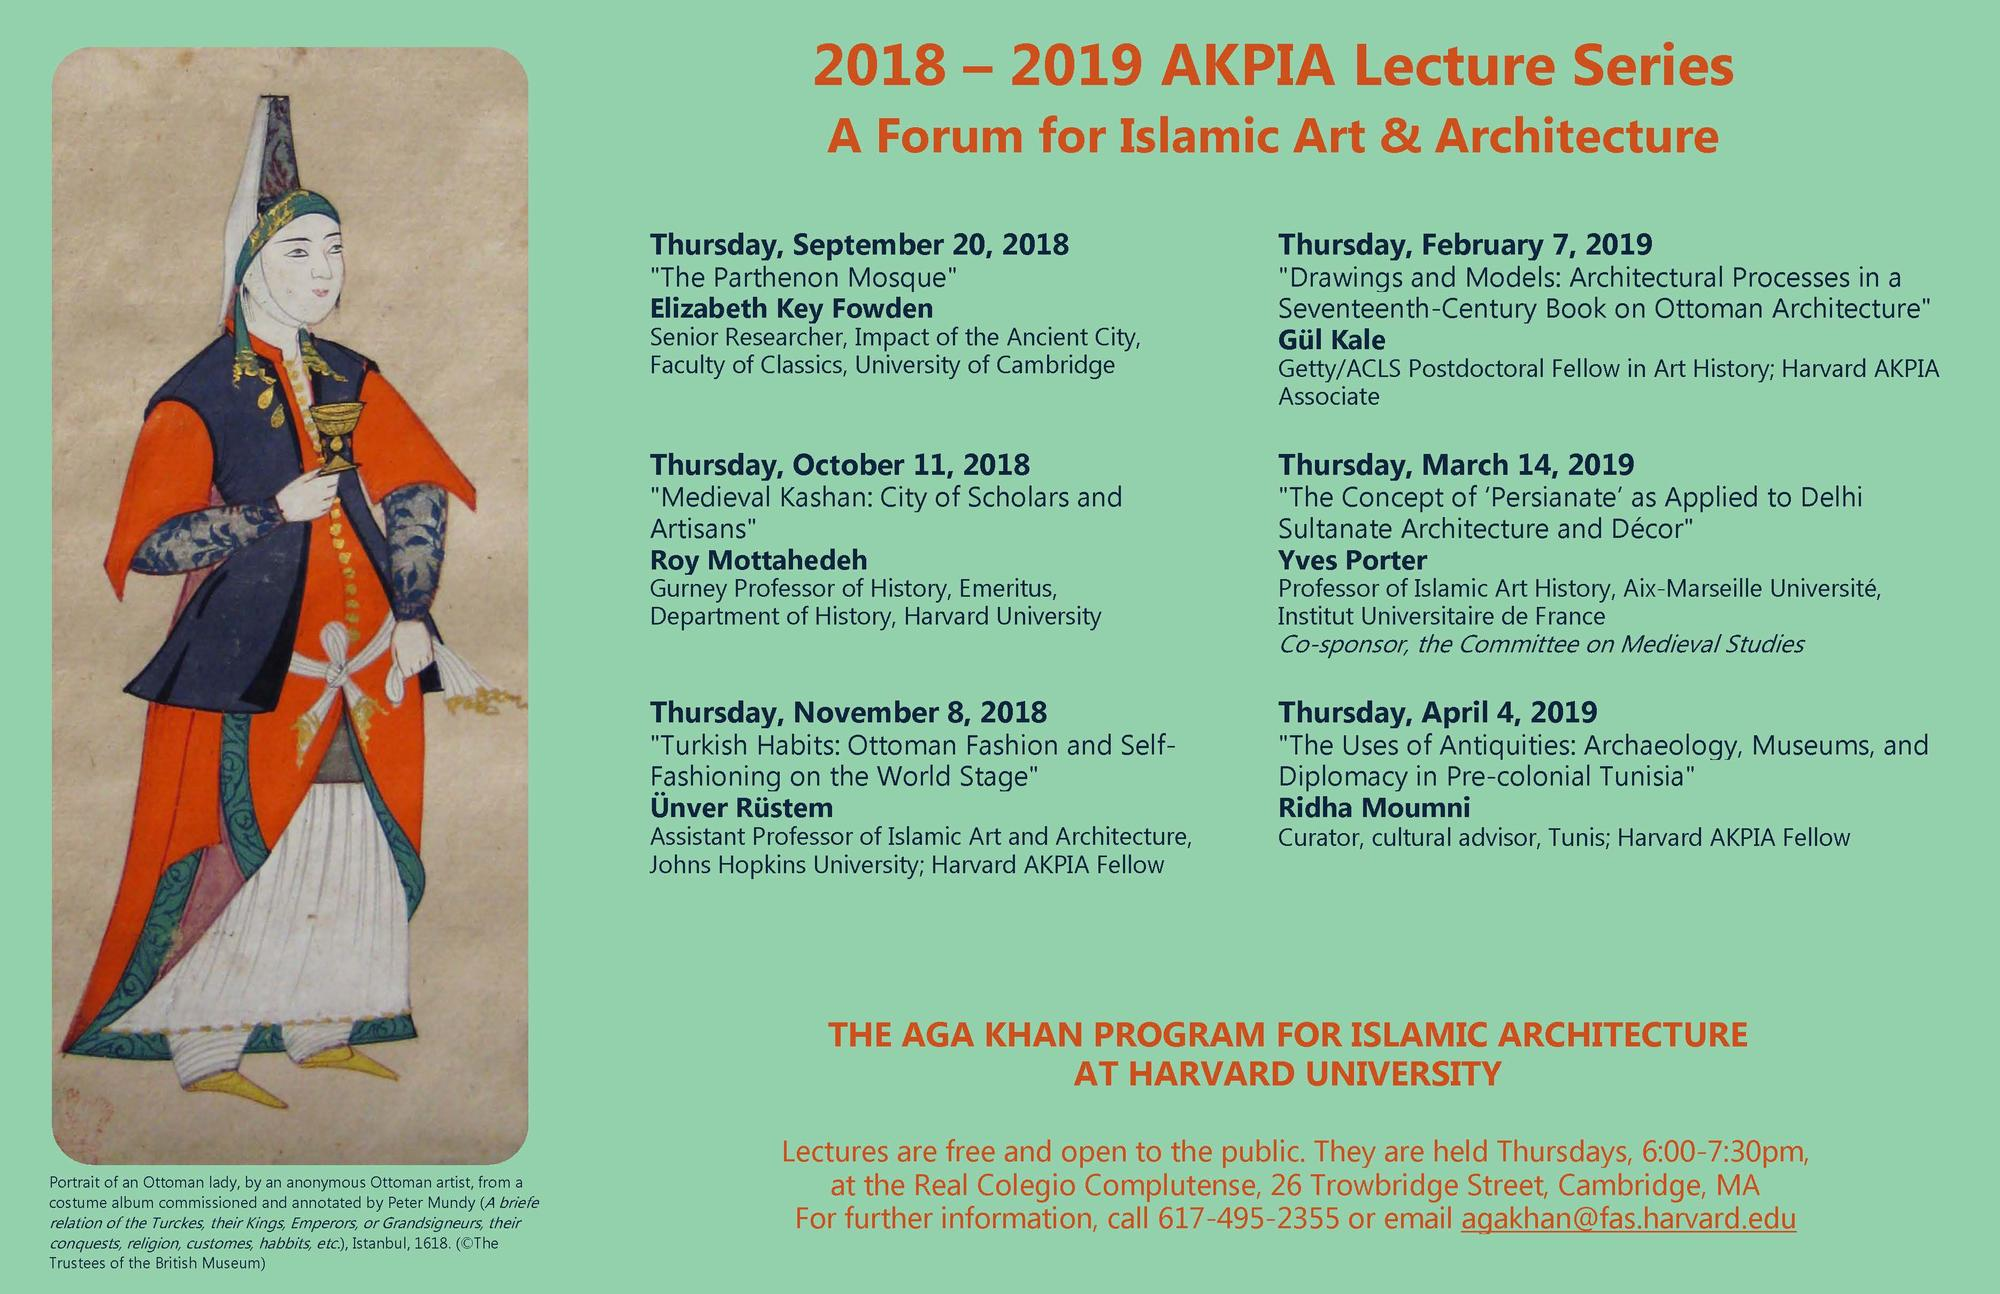 AKPIA Lectures 2018-19